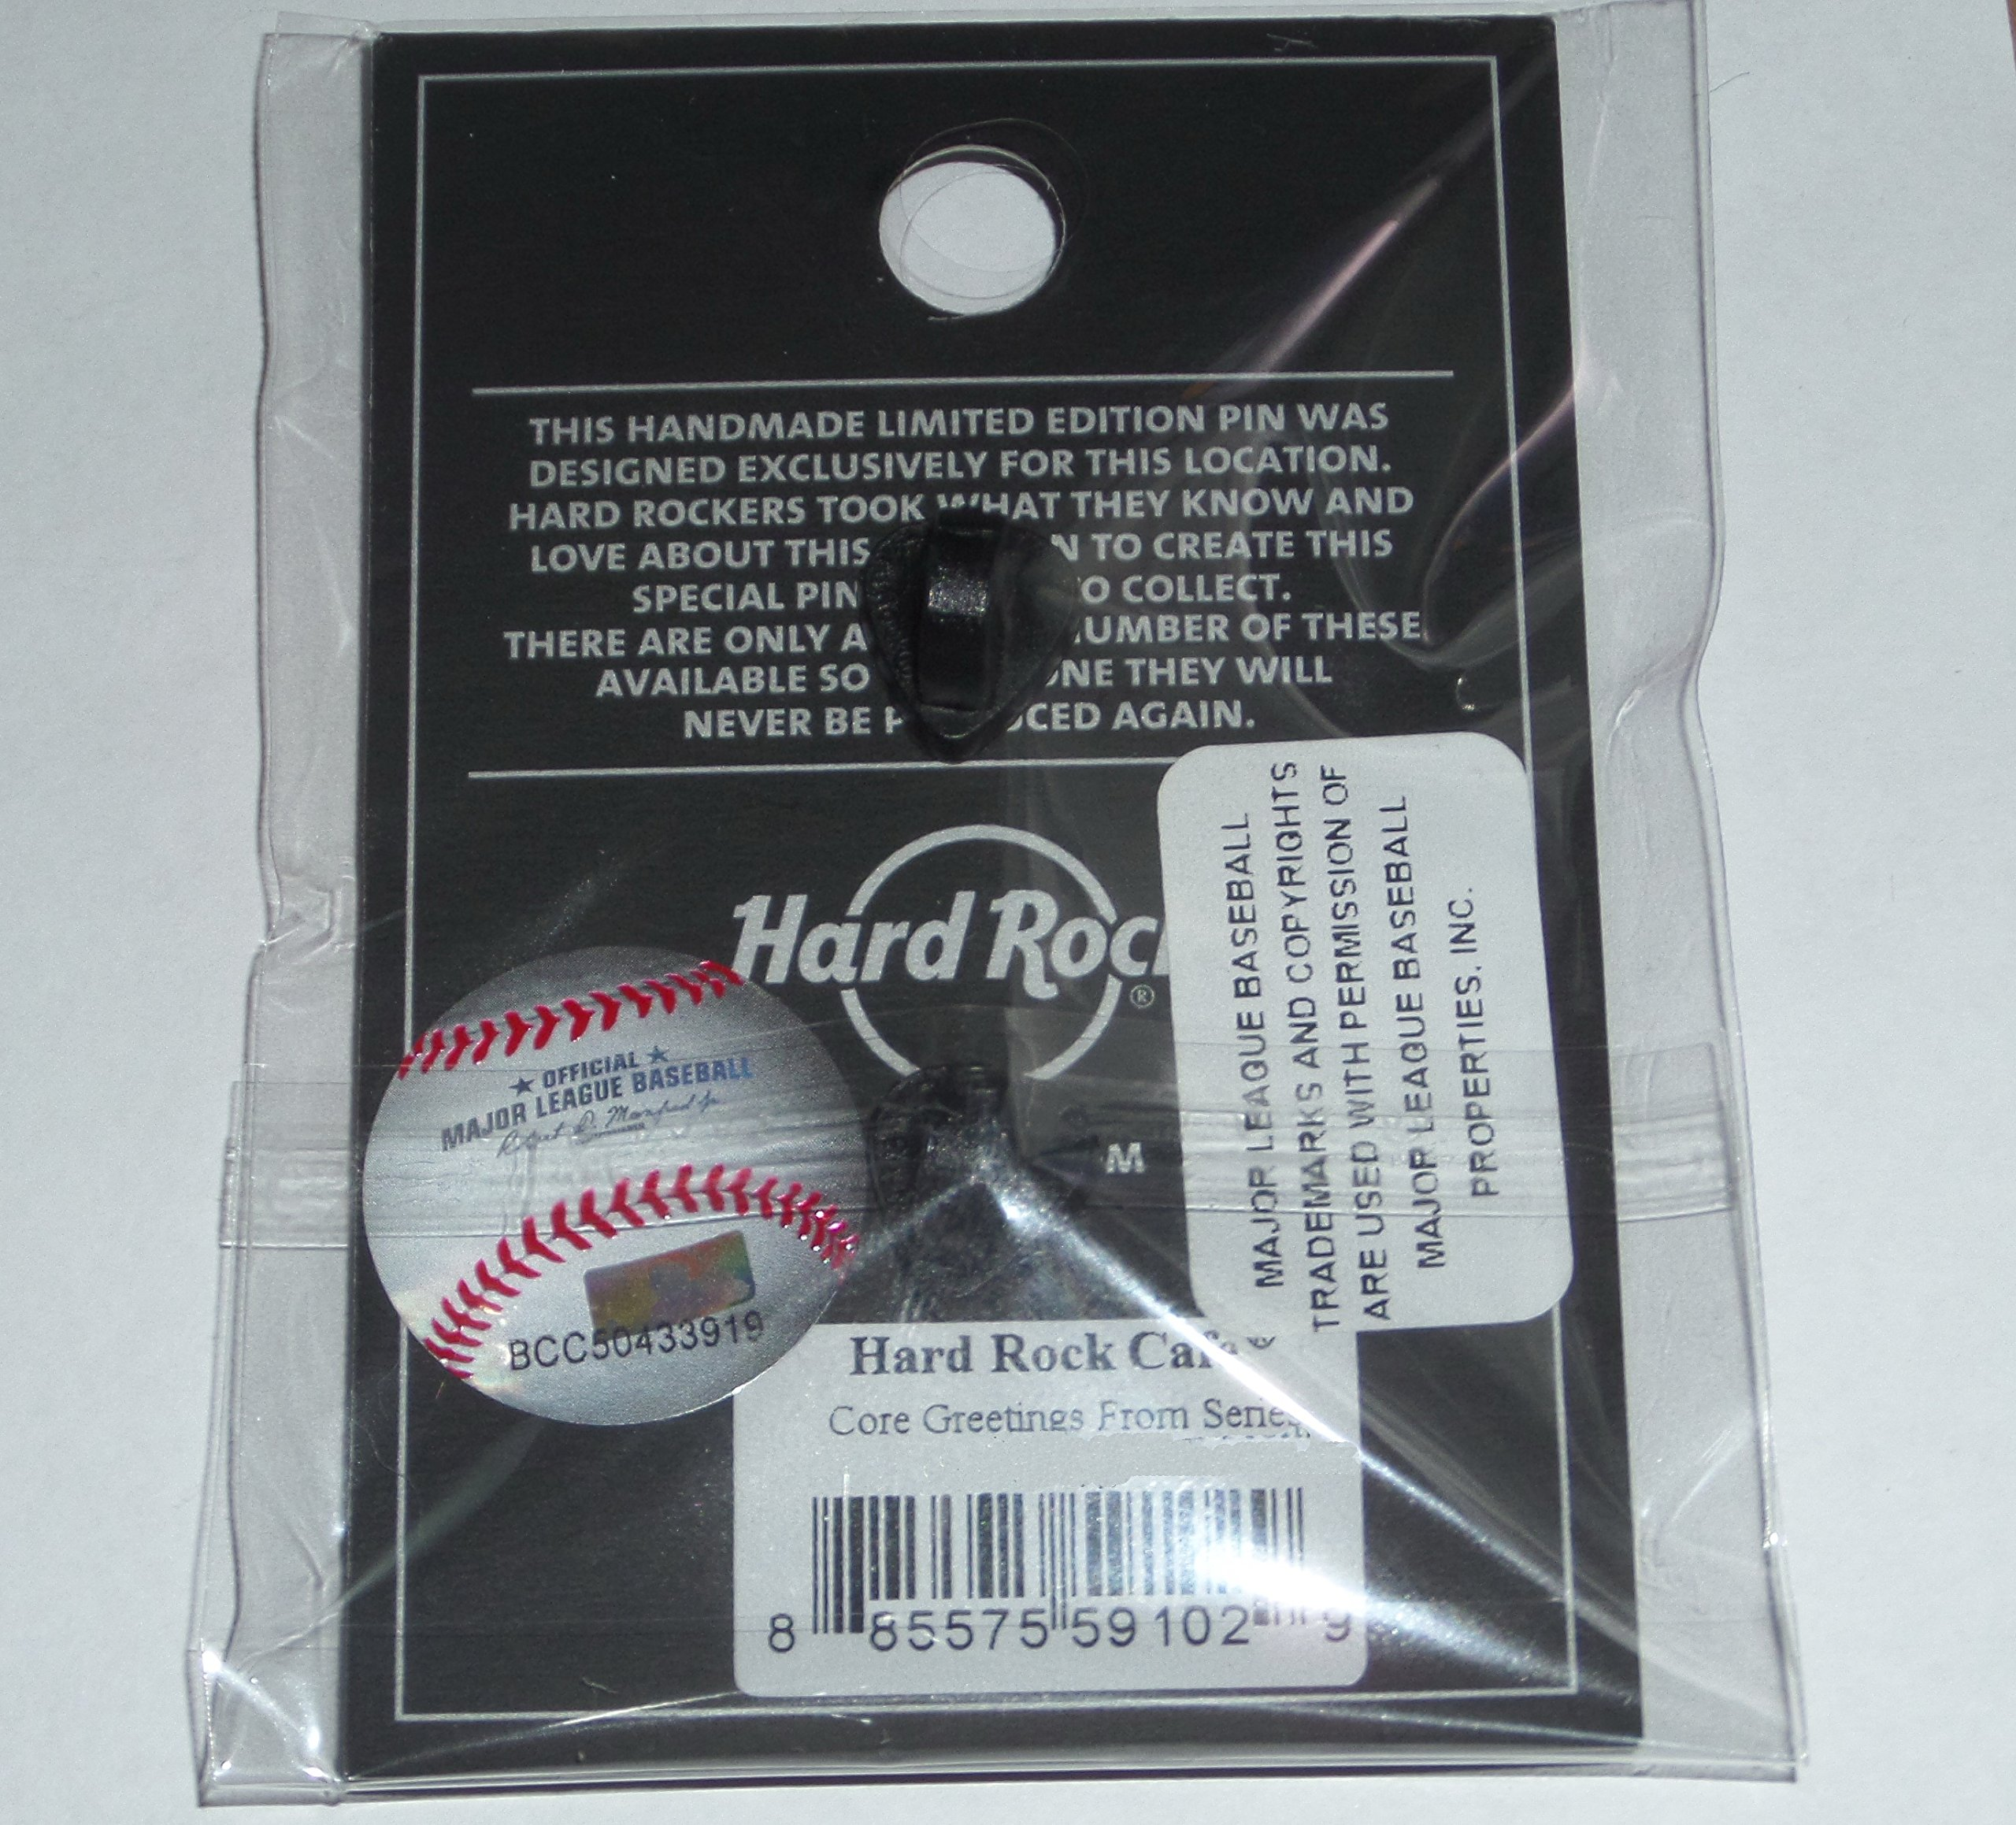 CORE GREETINGS FROM YANKEE STADIUM NY HARD ROCK CAFE PIN 2017 L/E SERIES HRC NYS